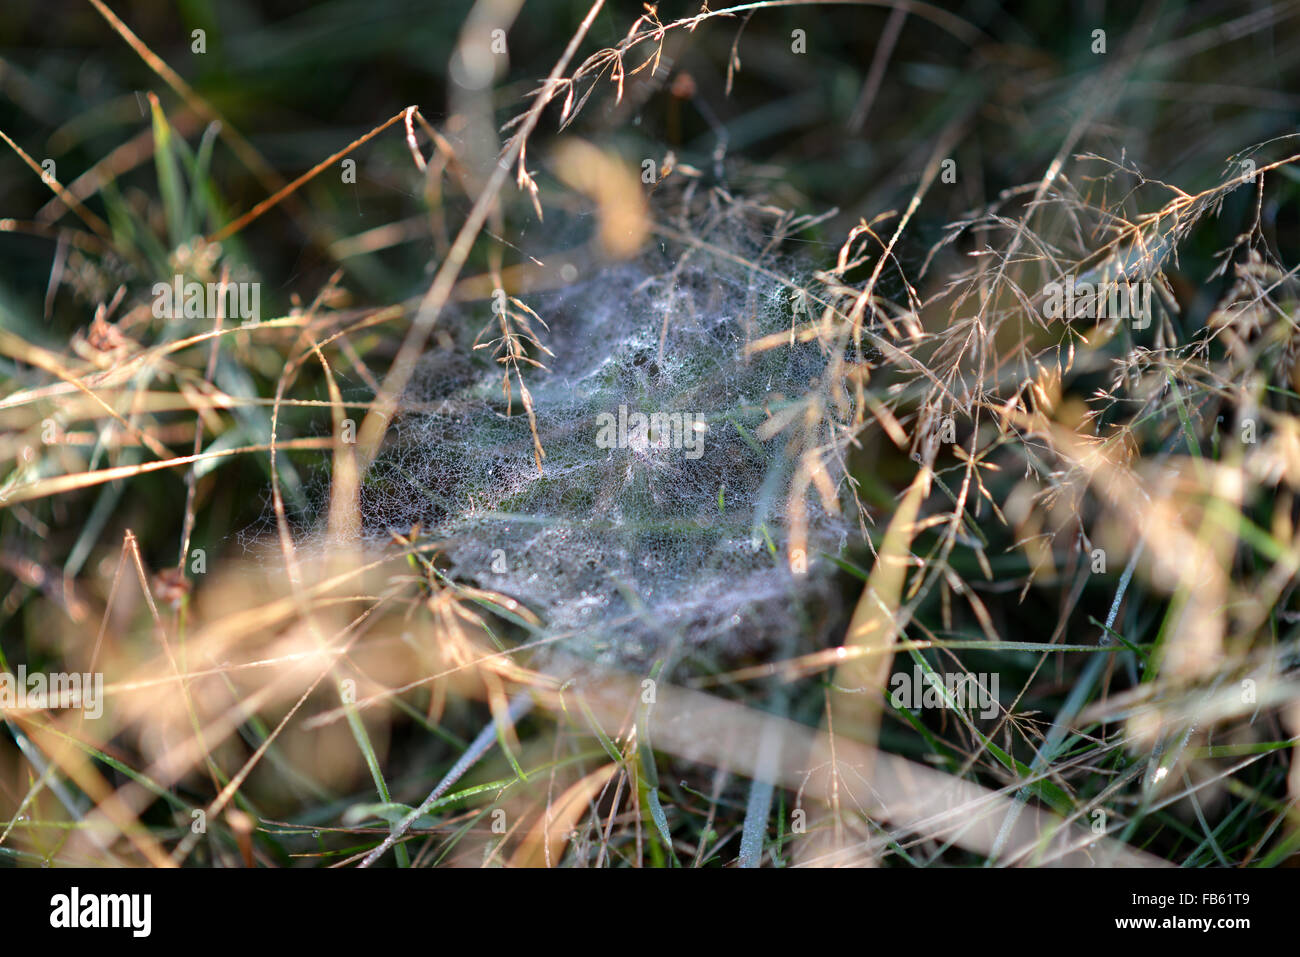 Spider web covered in dew, Ashdown Forest, UK - Stock Image